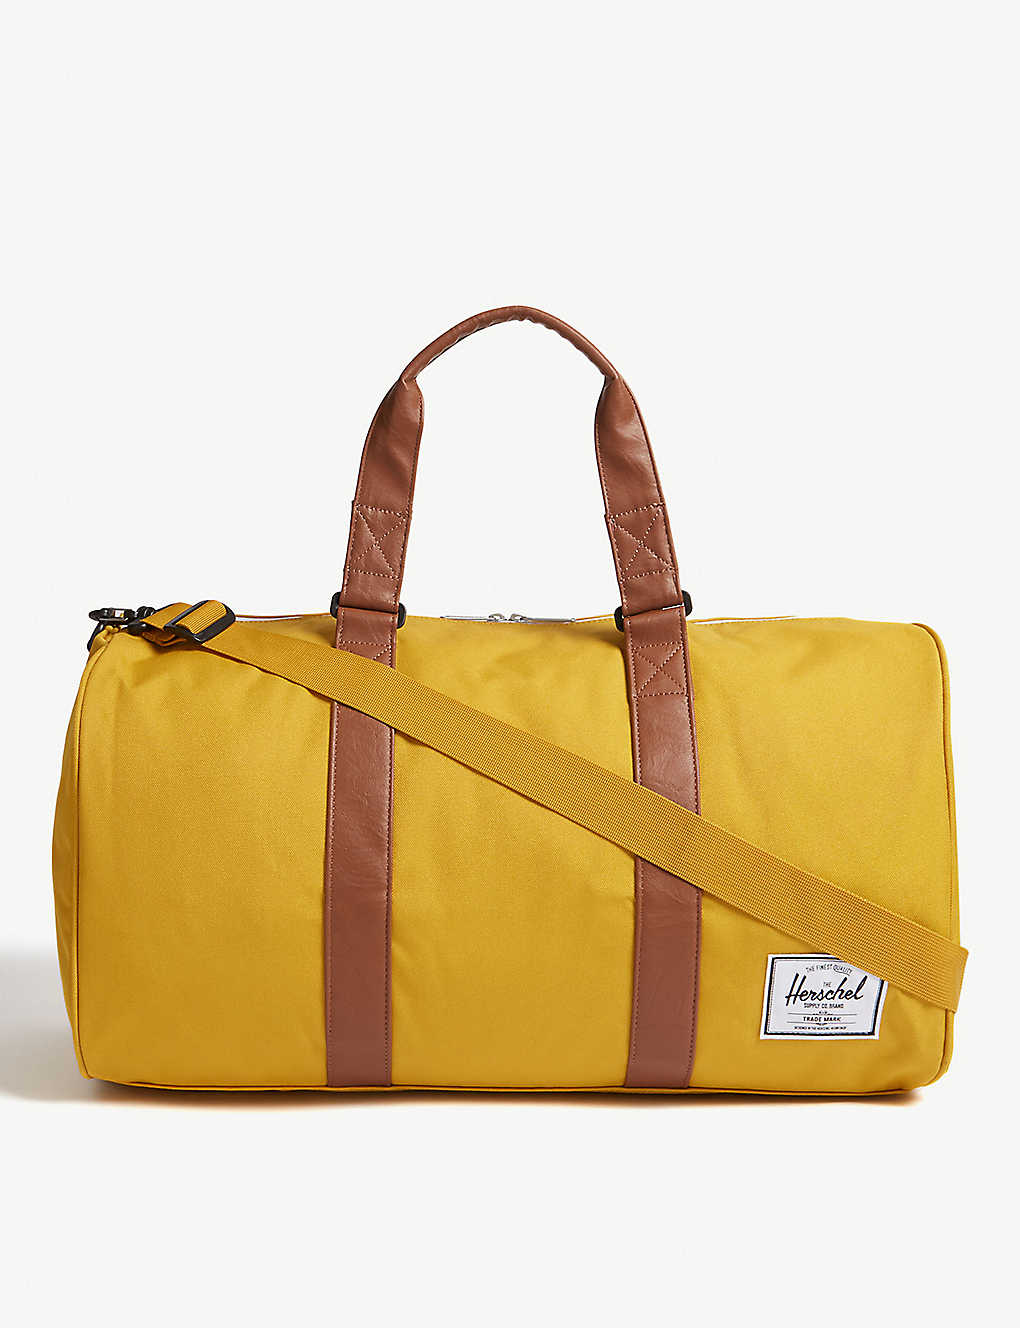 3571a71b5 HERSCHEL SUPPLY CO - Novel mid-volume duffle bag | Selfridges.com